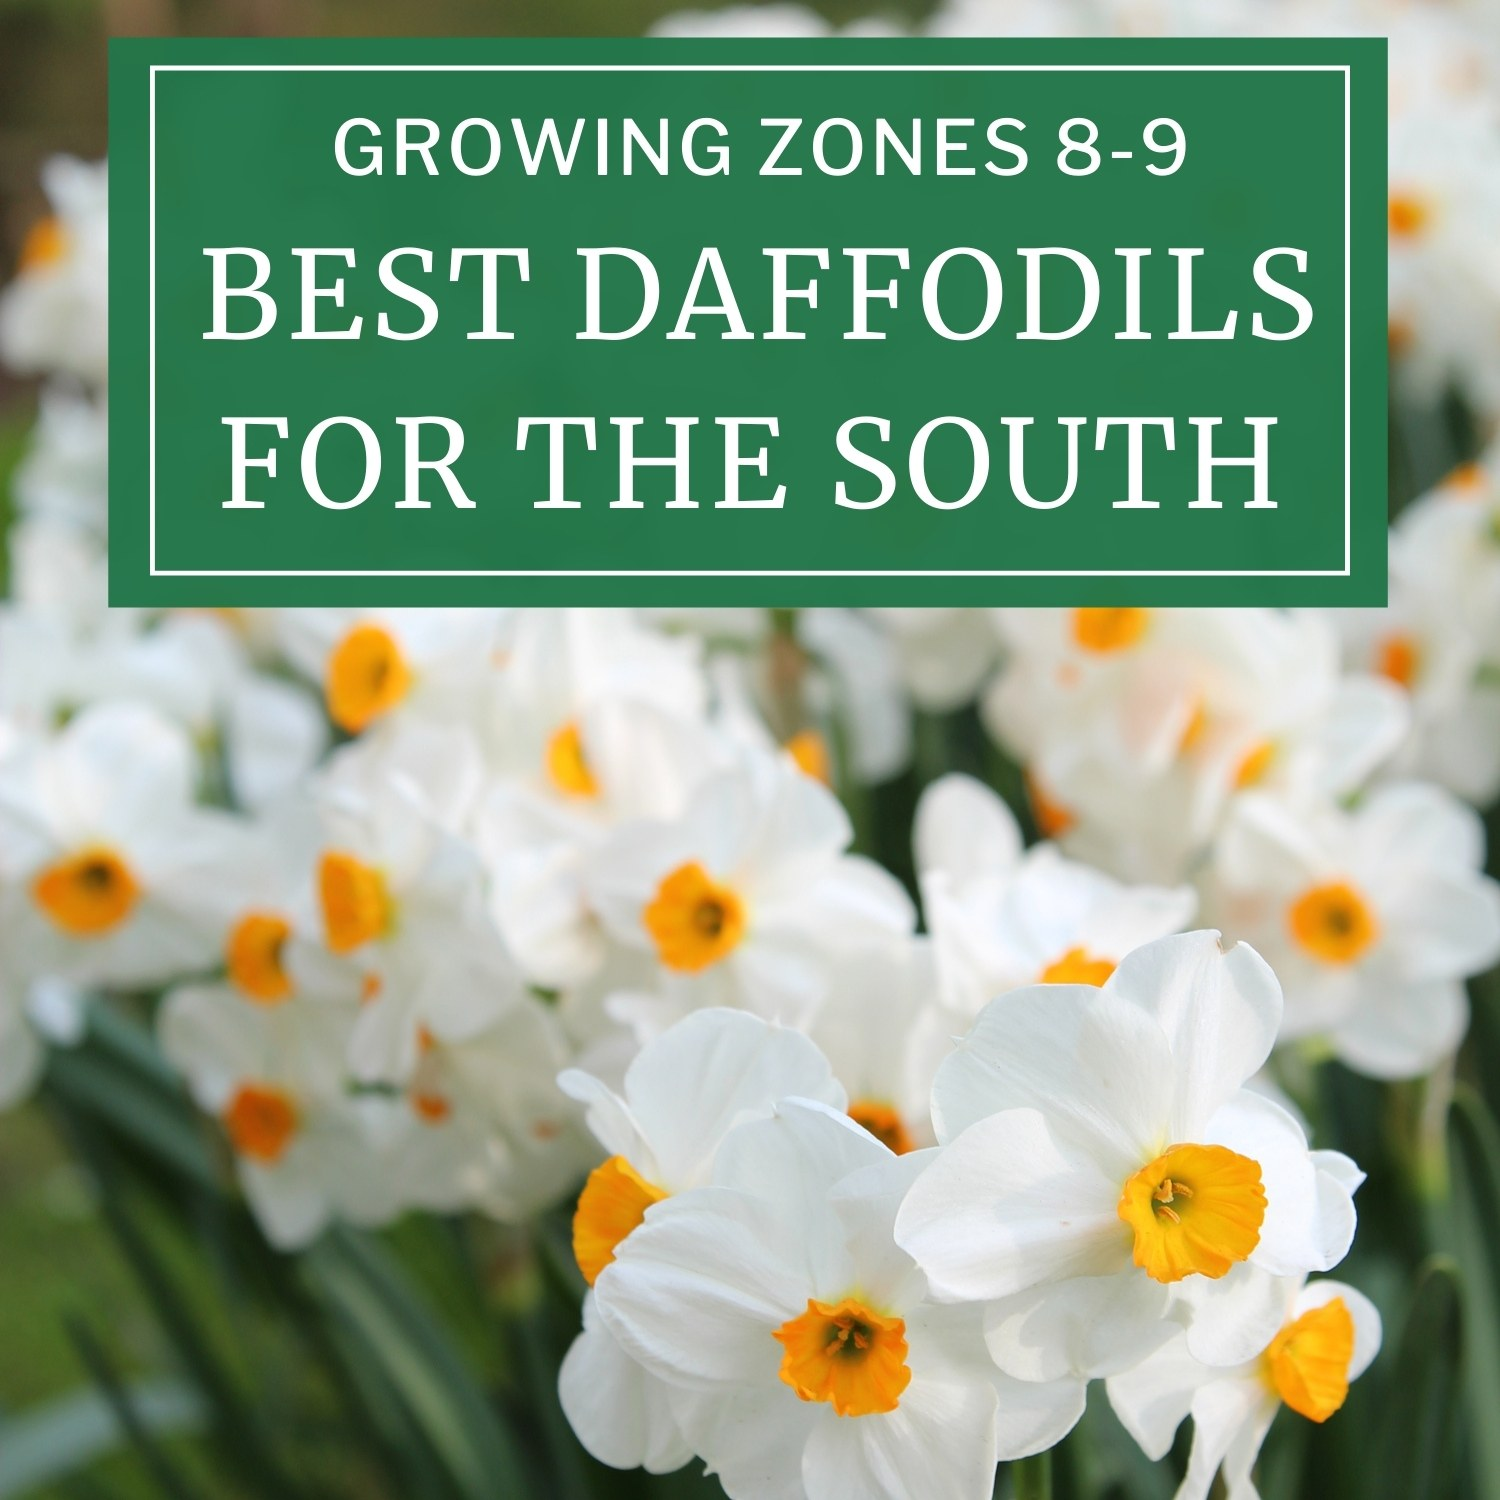 Best Daffodils for the South - Longfield Gardens